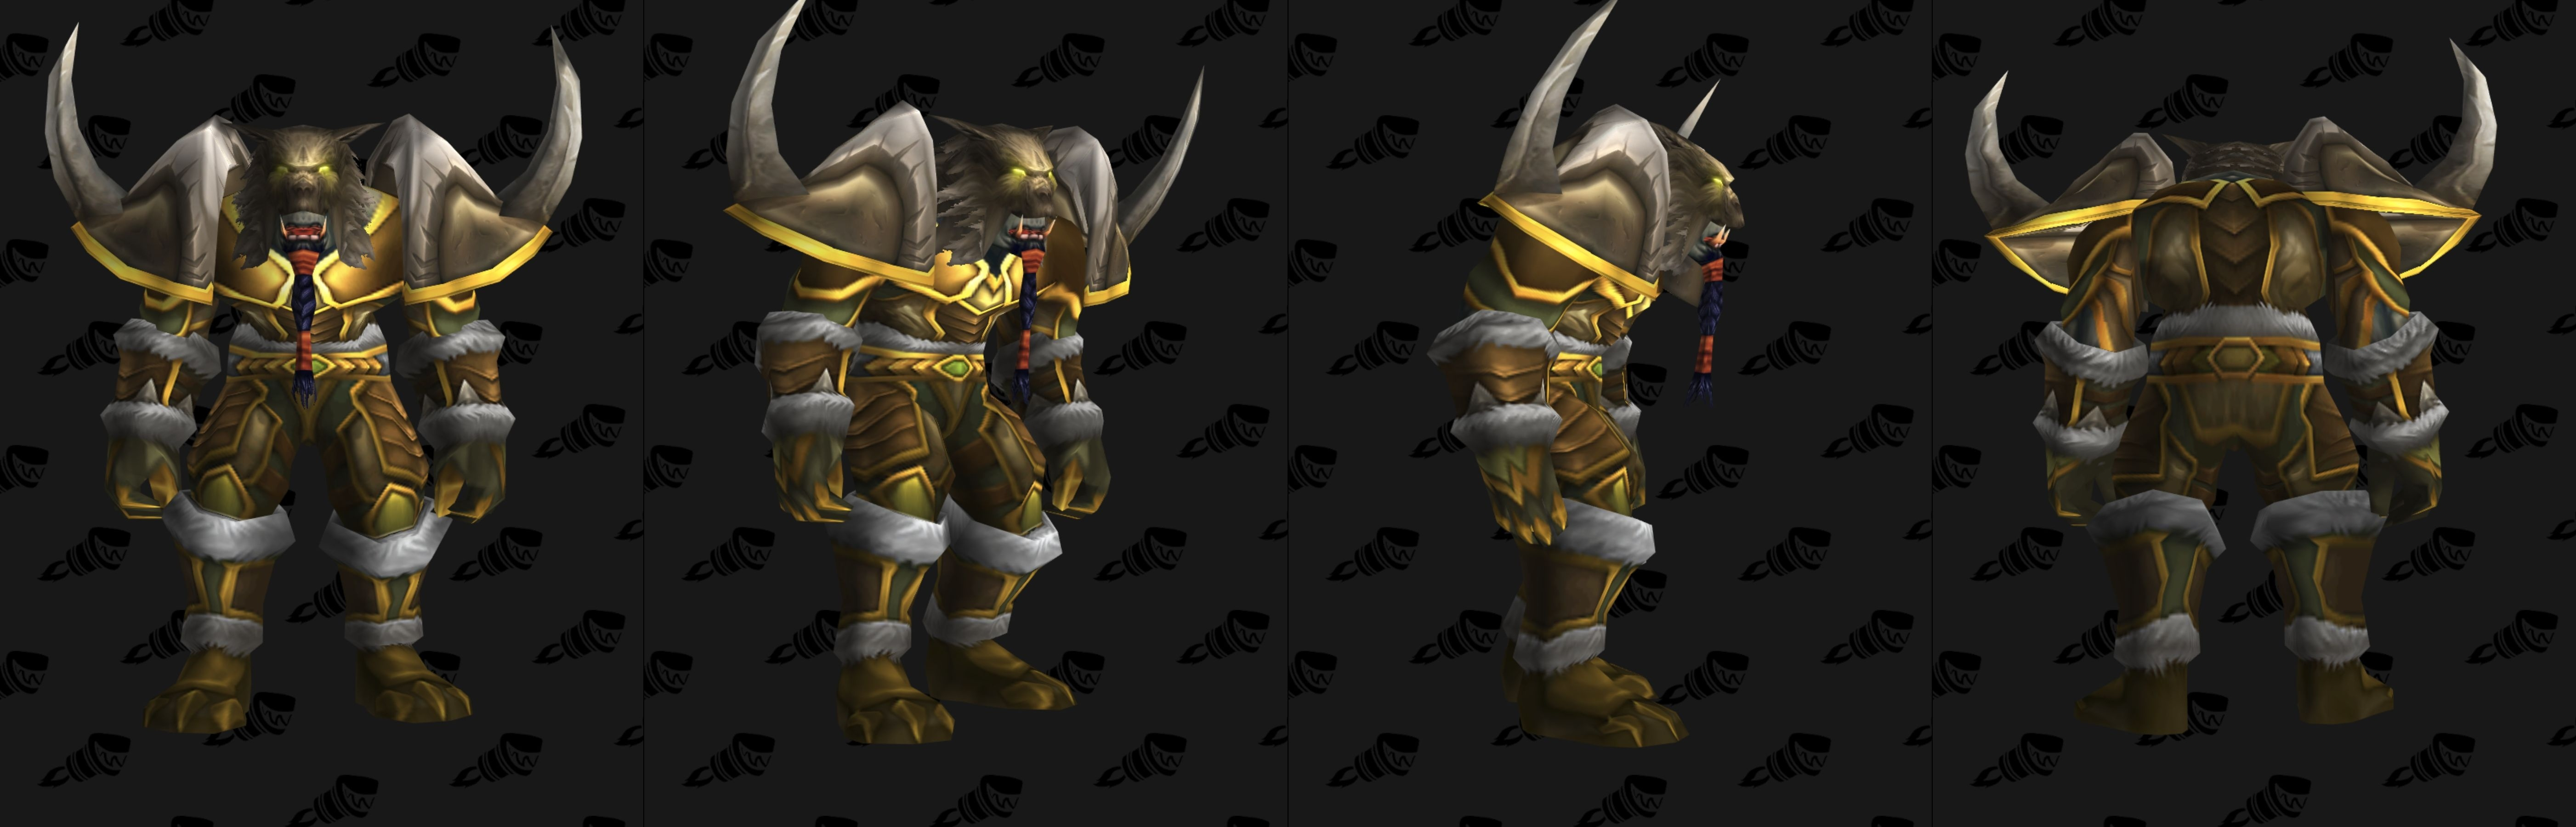 Tier 0 Dungeon Set 1 Overview Classic Wow Guides Wowhead